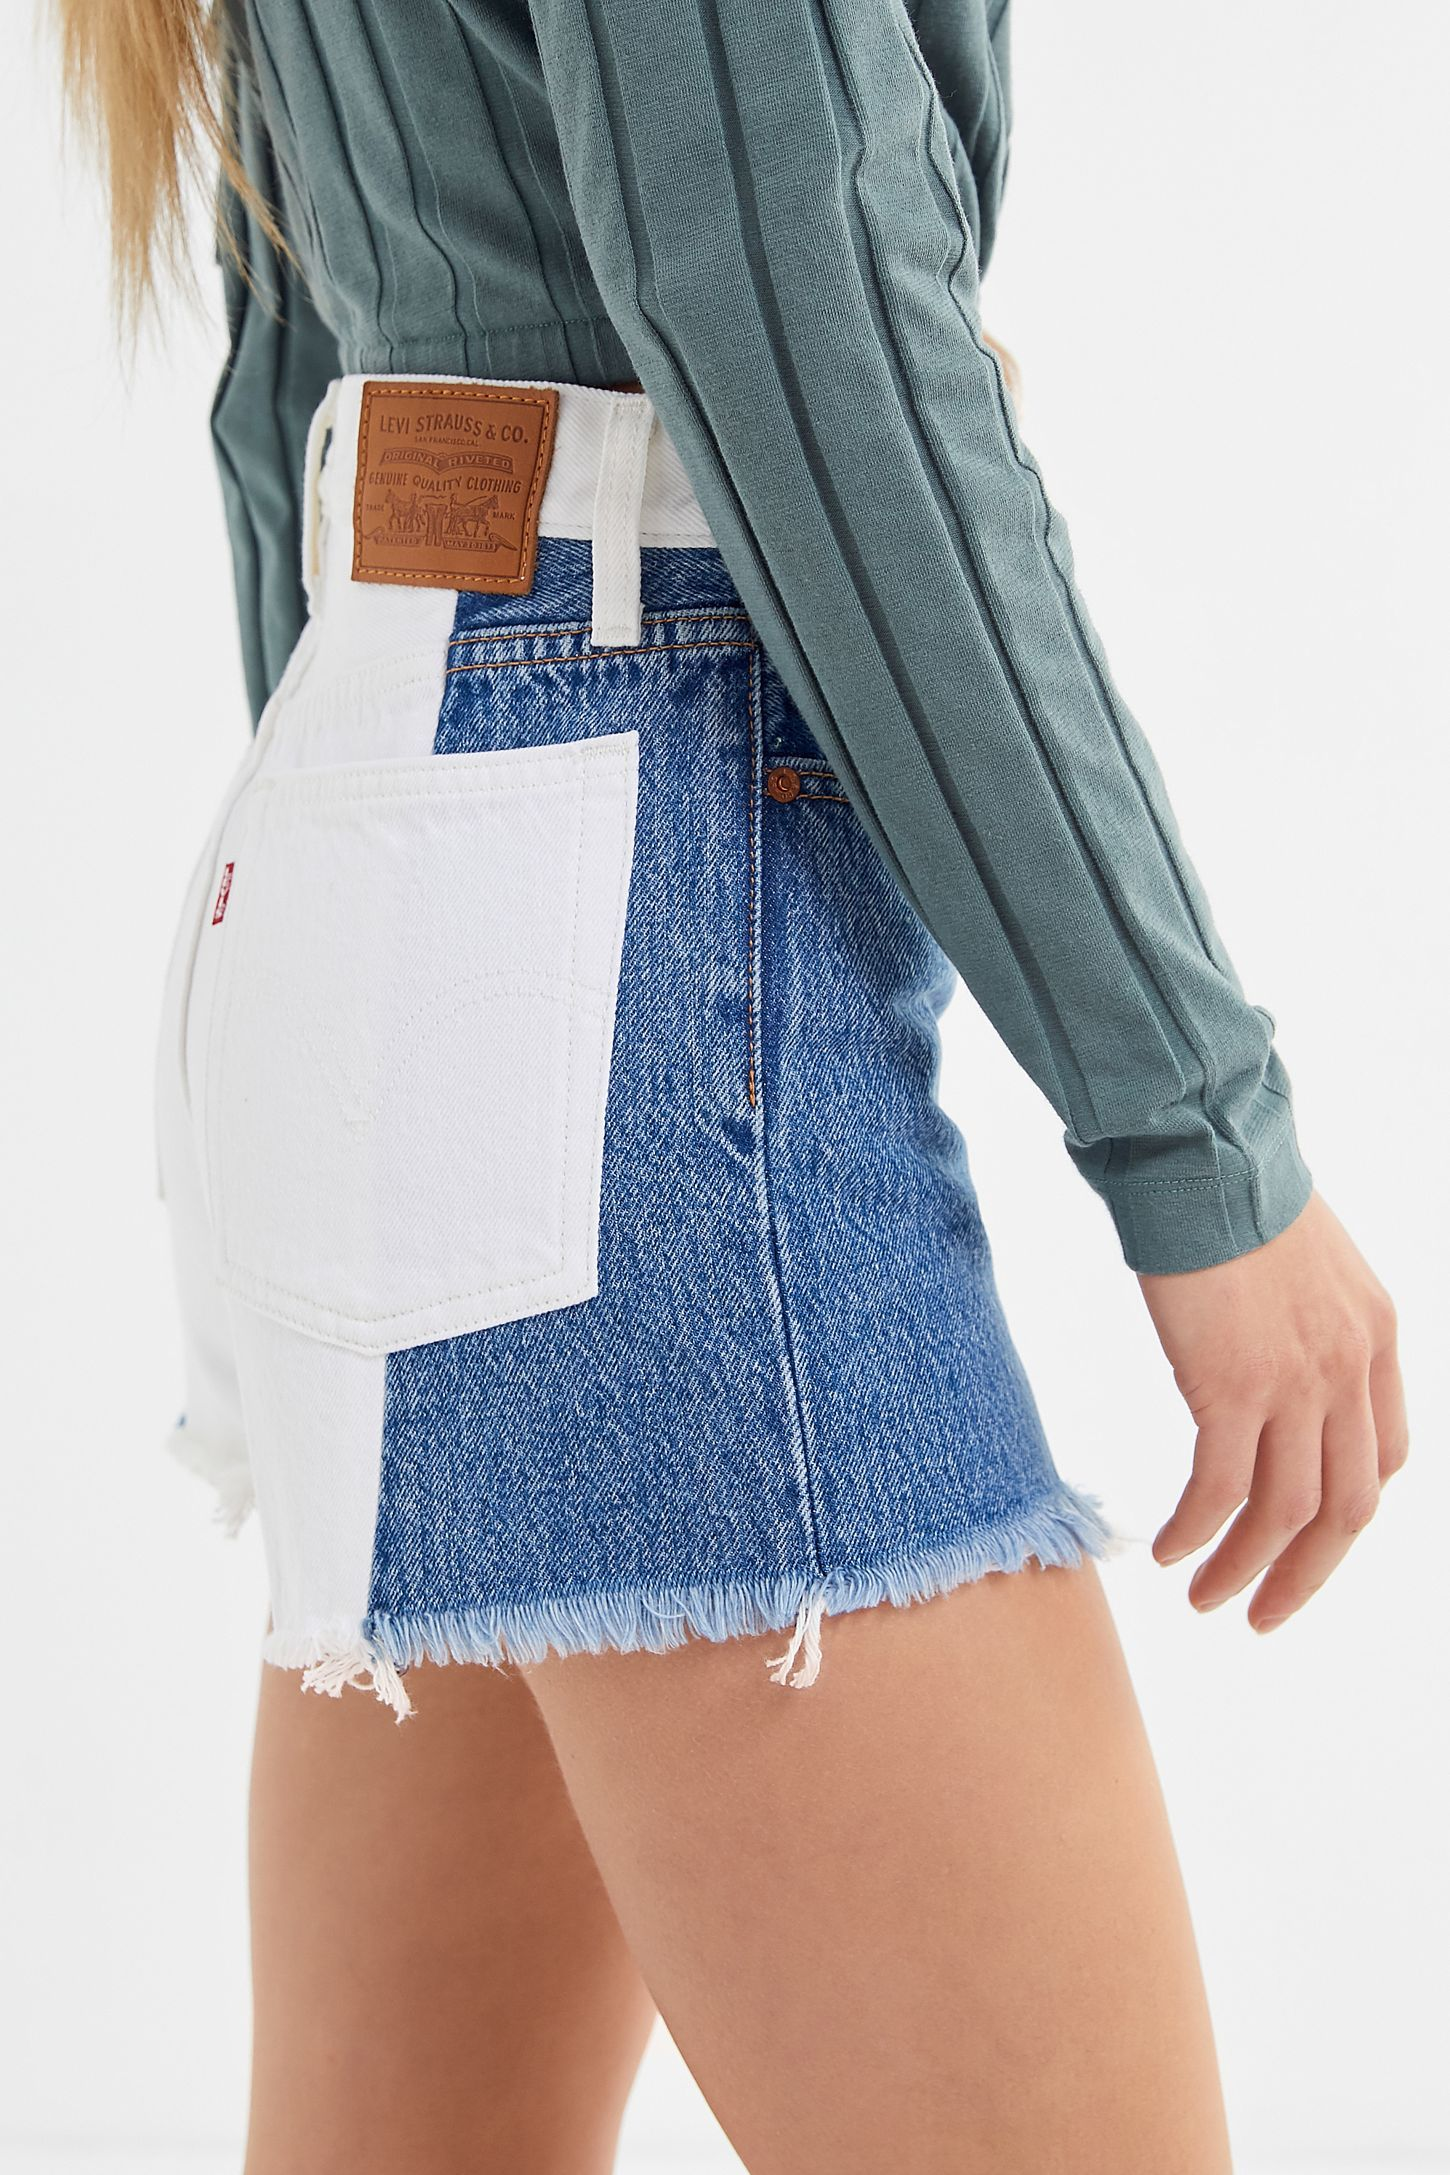 7fffeecc7e Levi's Wedgie High-Rise Denim Short - Two Toned | Urban Outfitters